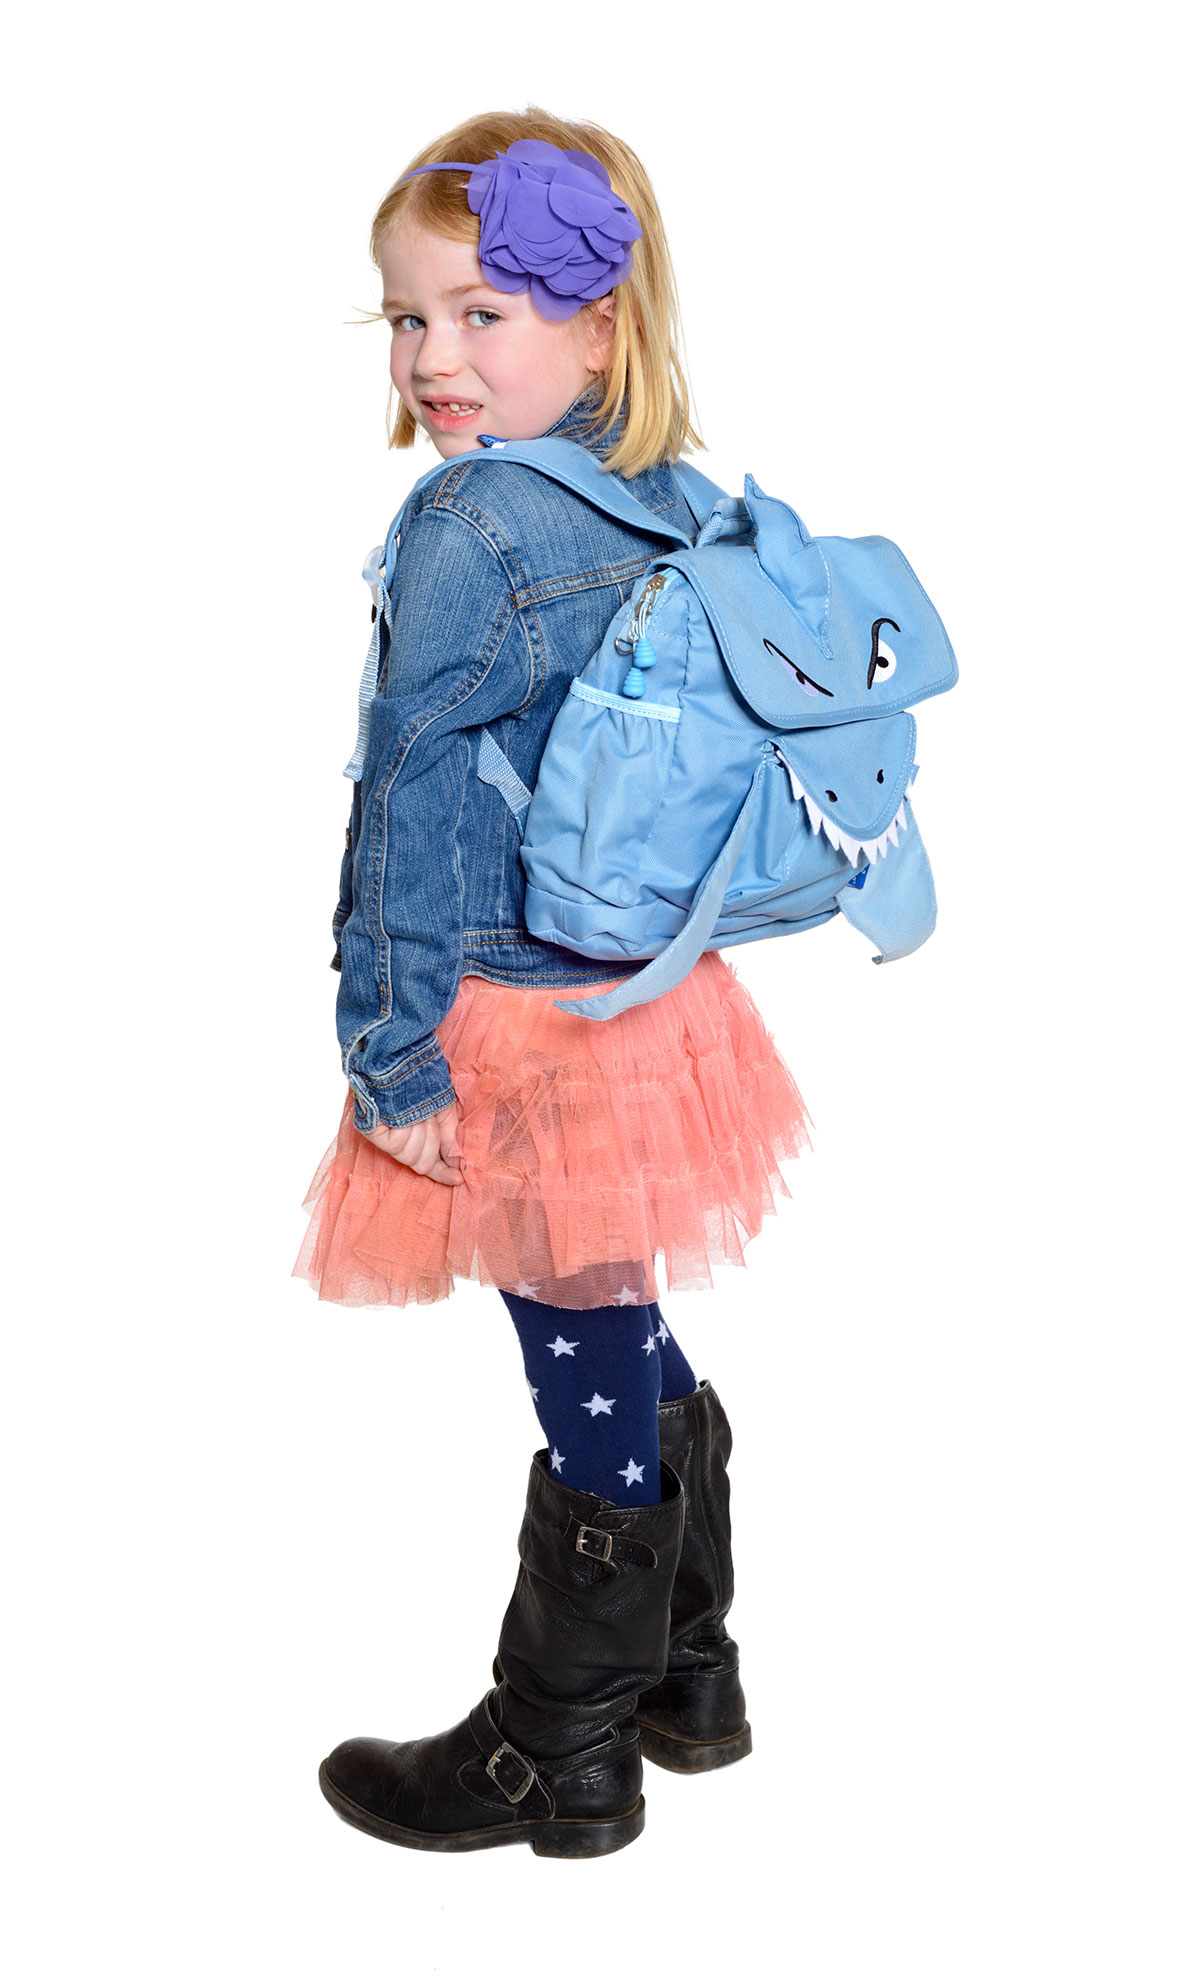 Hottest New Fall Fashion Trends For Back-to-School